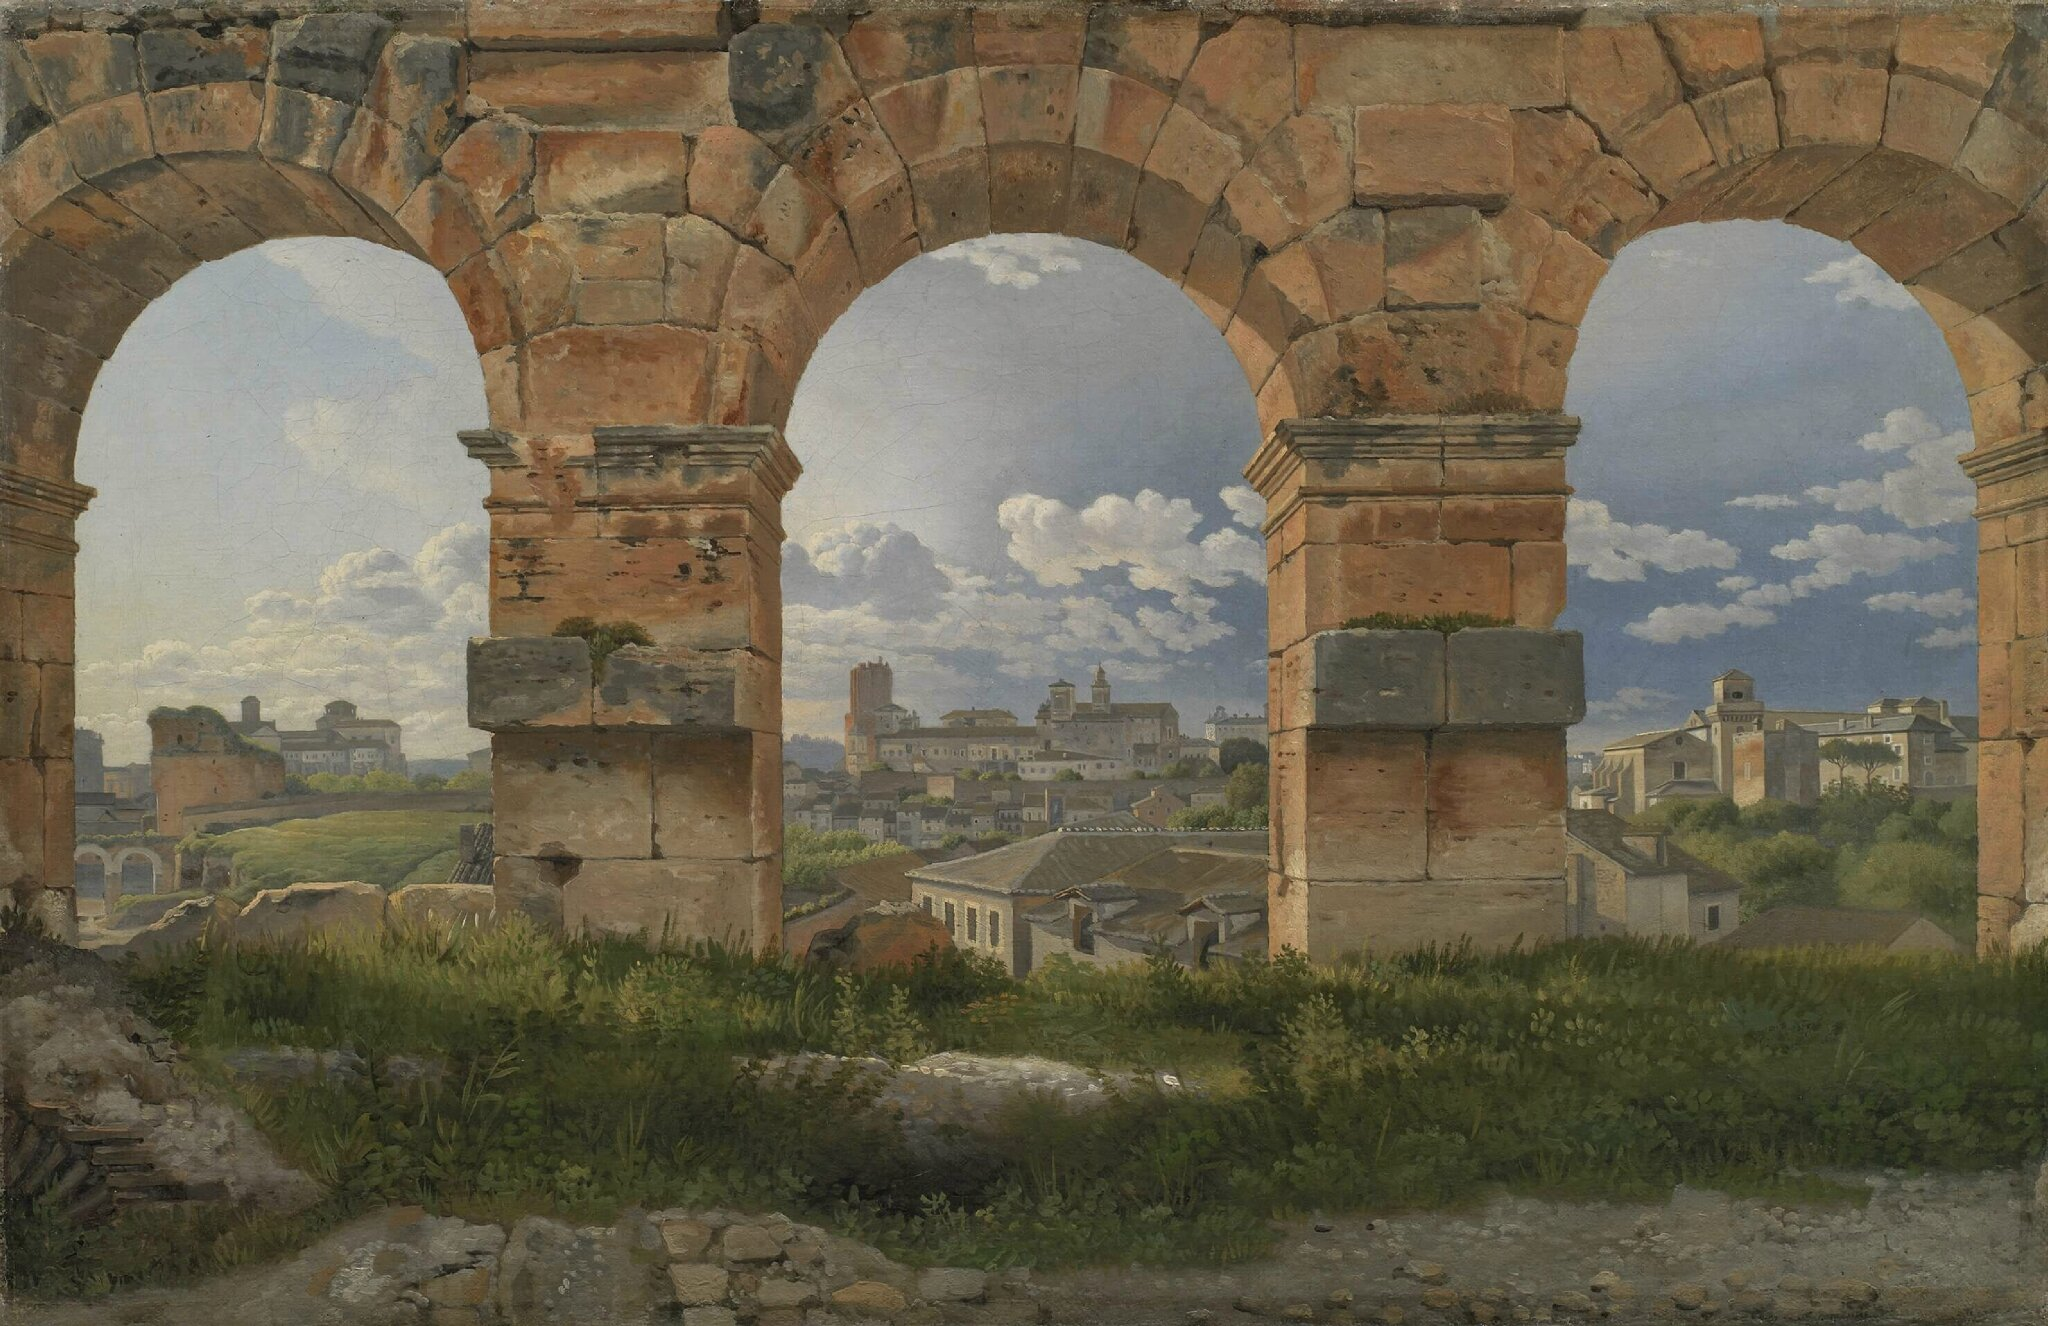 'Eckersberg ∙ Fascination with Reality. The Golden Age of Danish Painting' at Hamburger Kunsthalle, to 30 May 2016